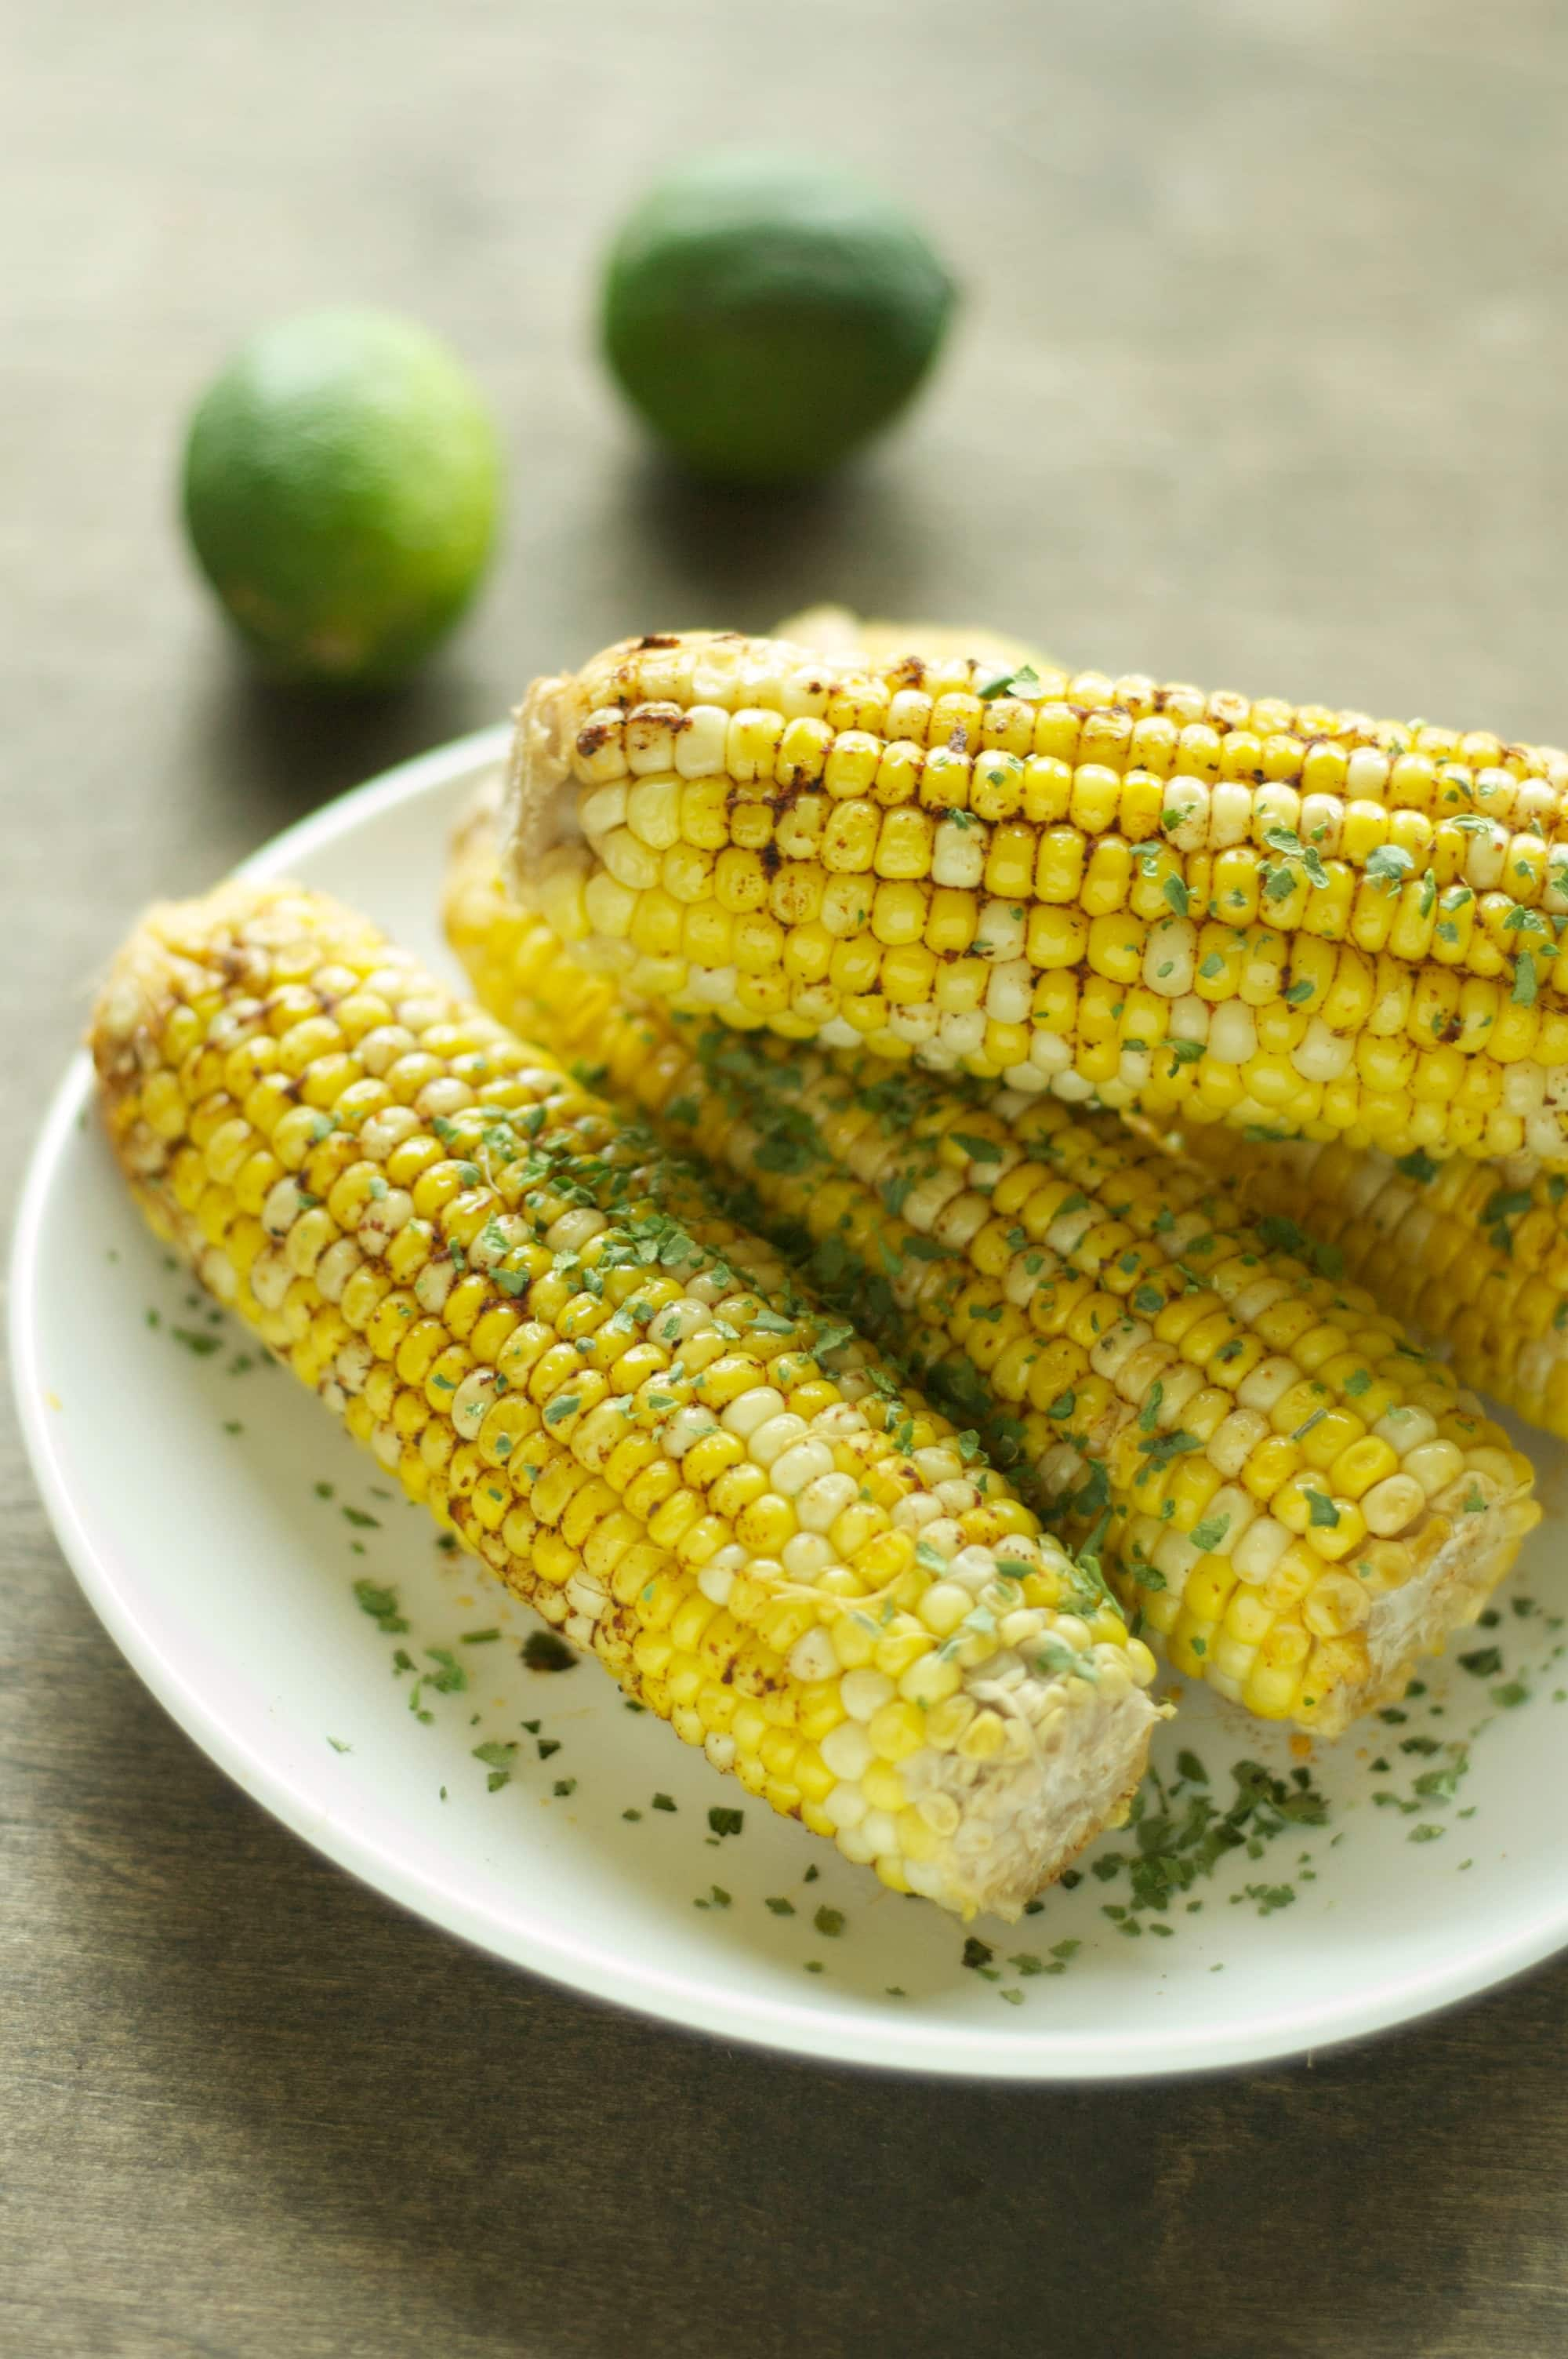 Crockpot Corn on the Cob with Chili Lime Butter | Crockpot Gourmet